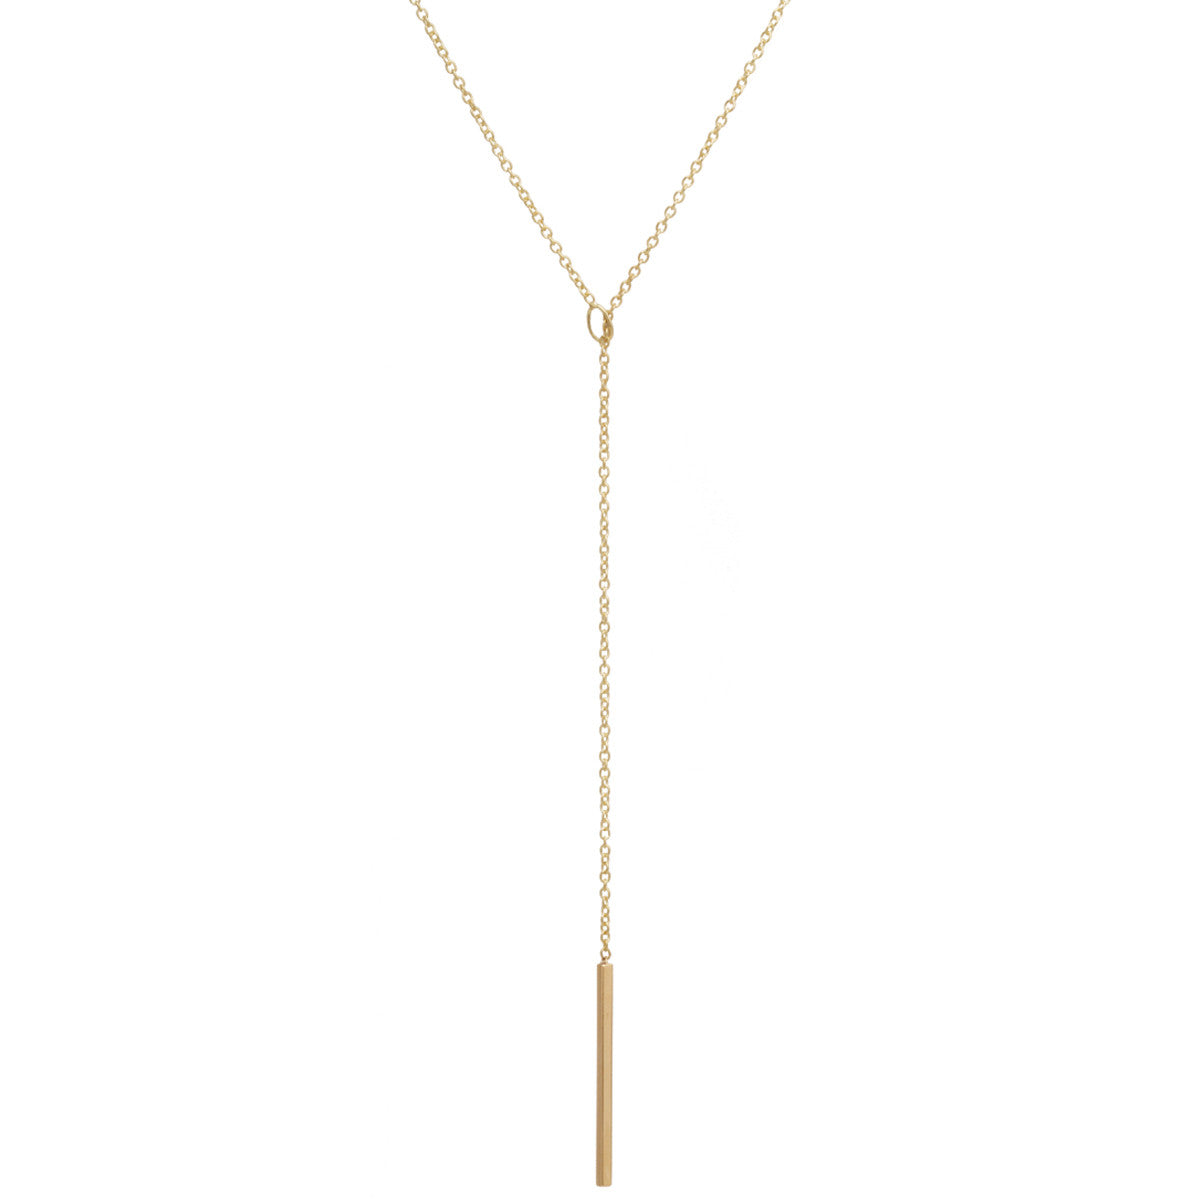 14k vertical bar toggle necklace